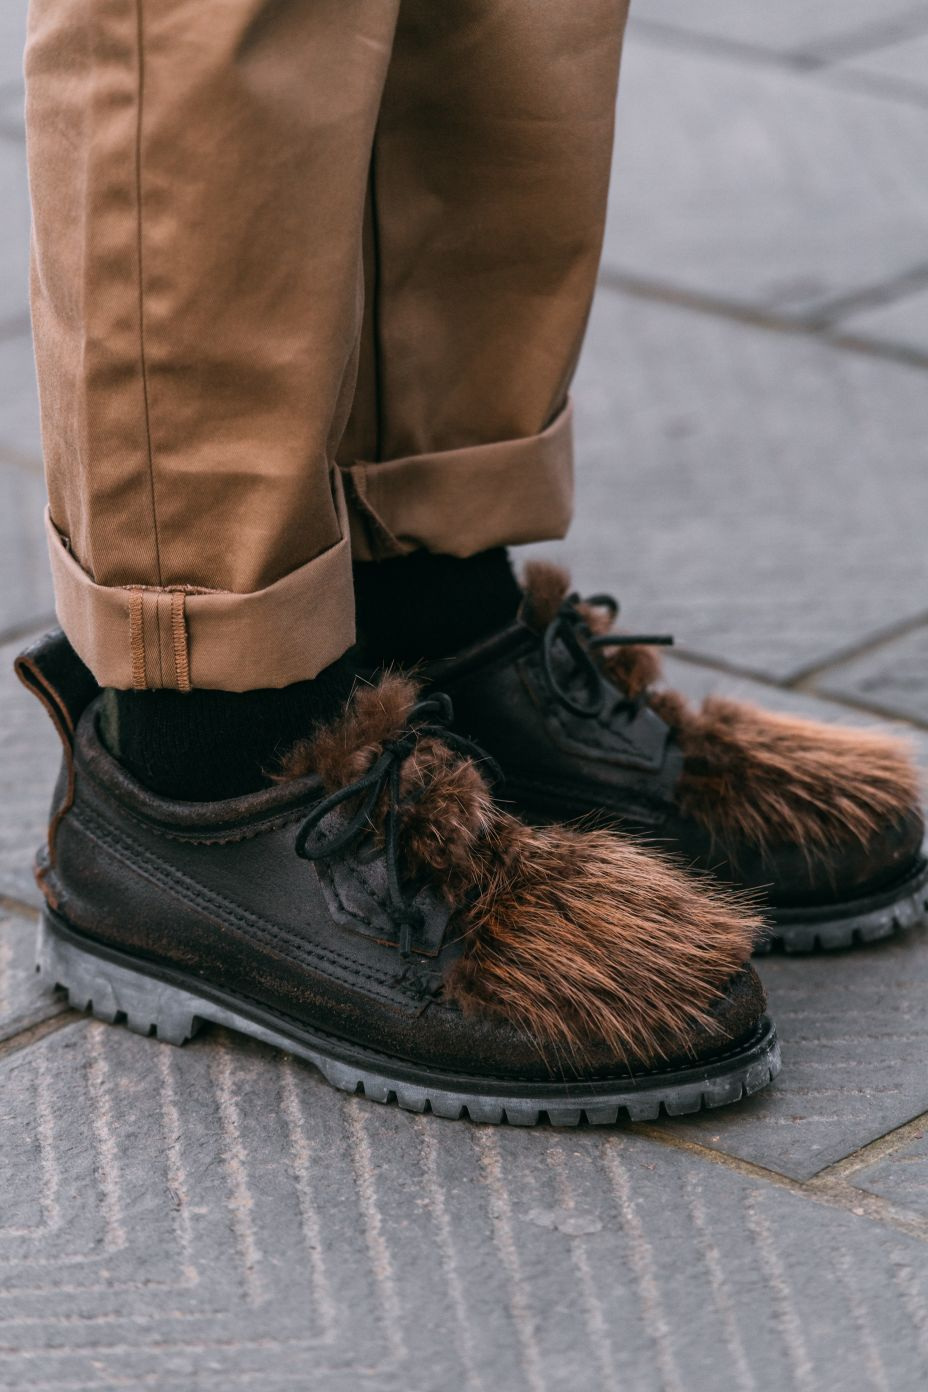 pitti uomo, street style, fashion, men's, fall 2020, shoes, footwear, shoe style, streetstyle